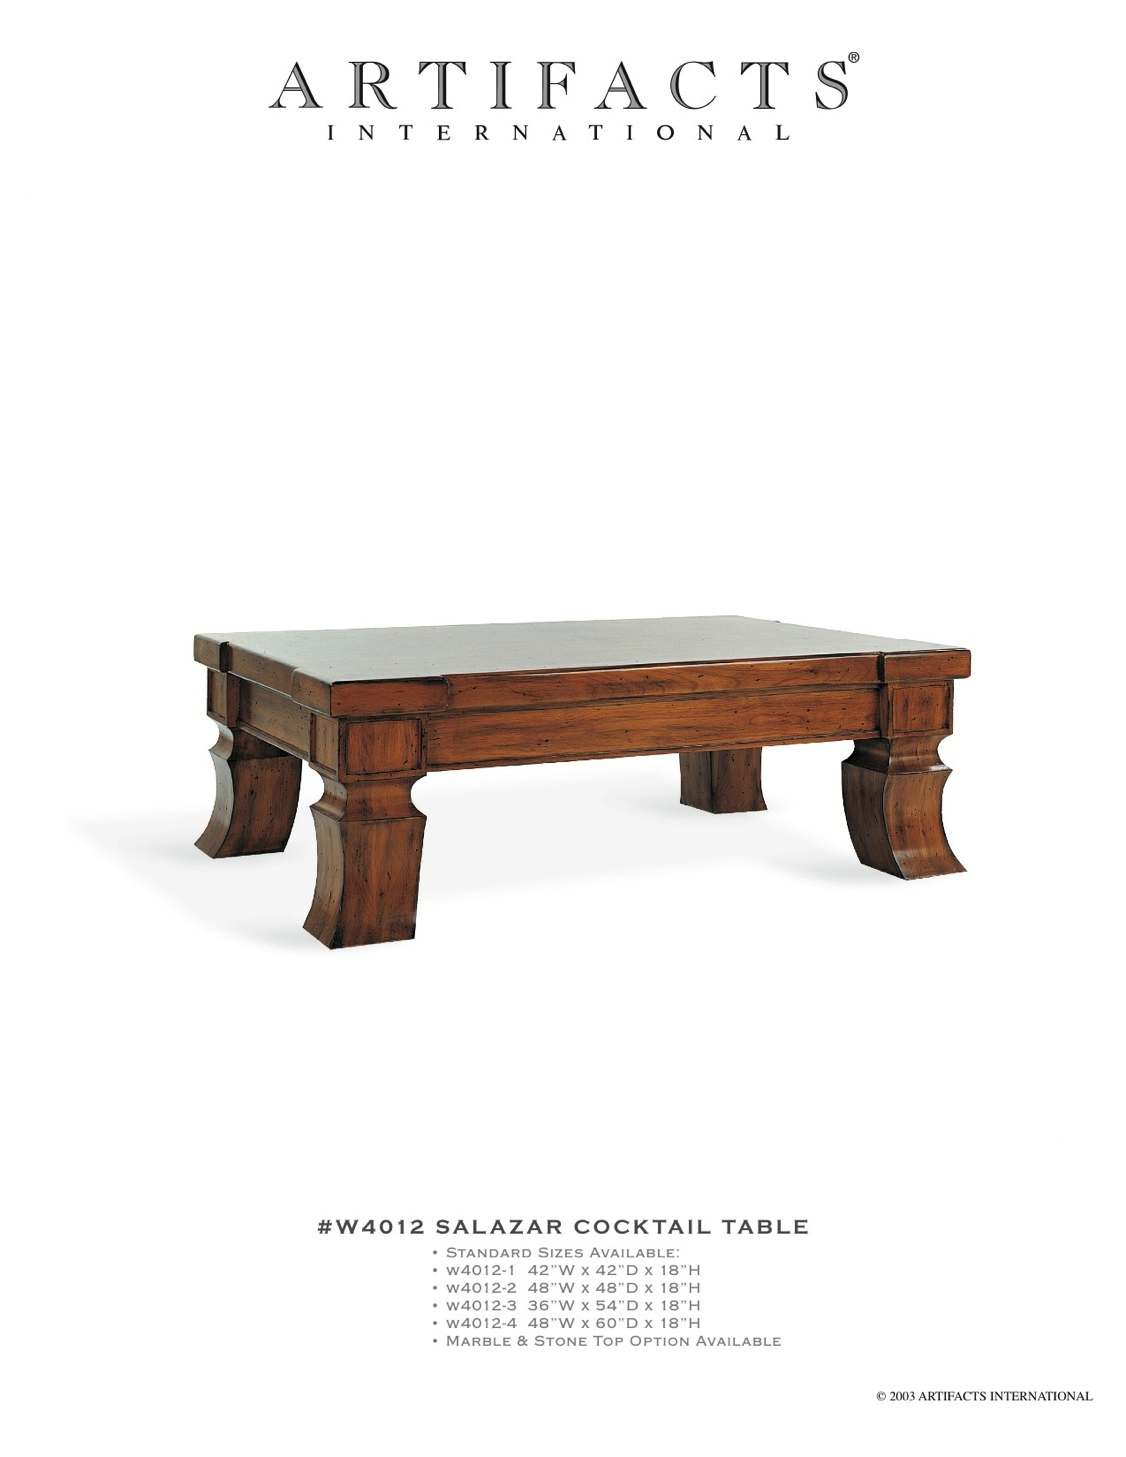 #W4038 Montauk Cocktail Table